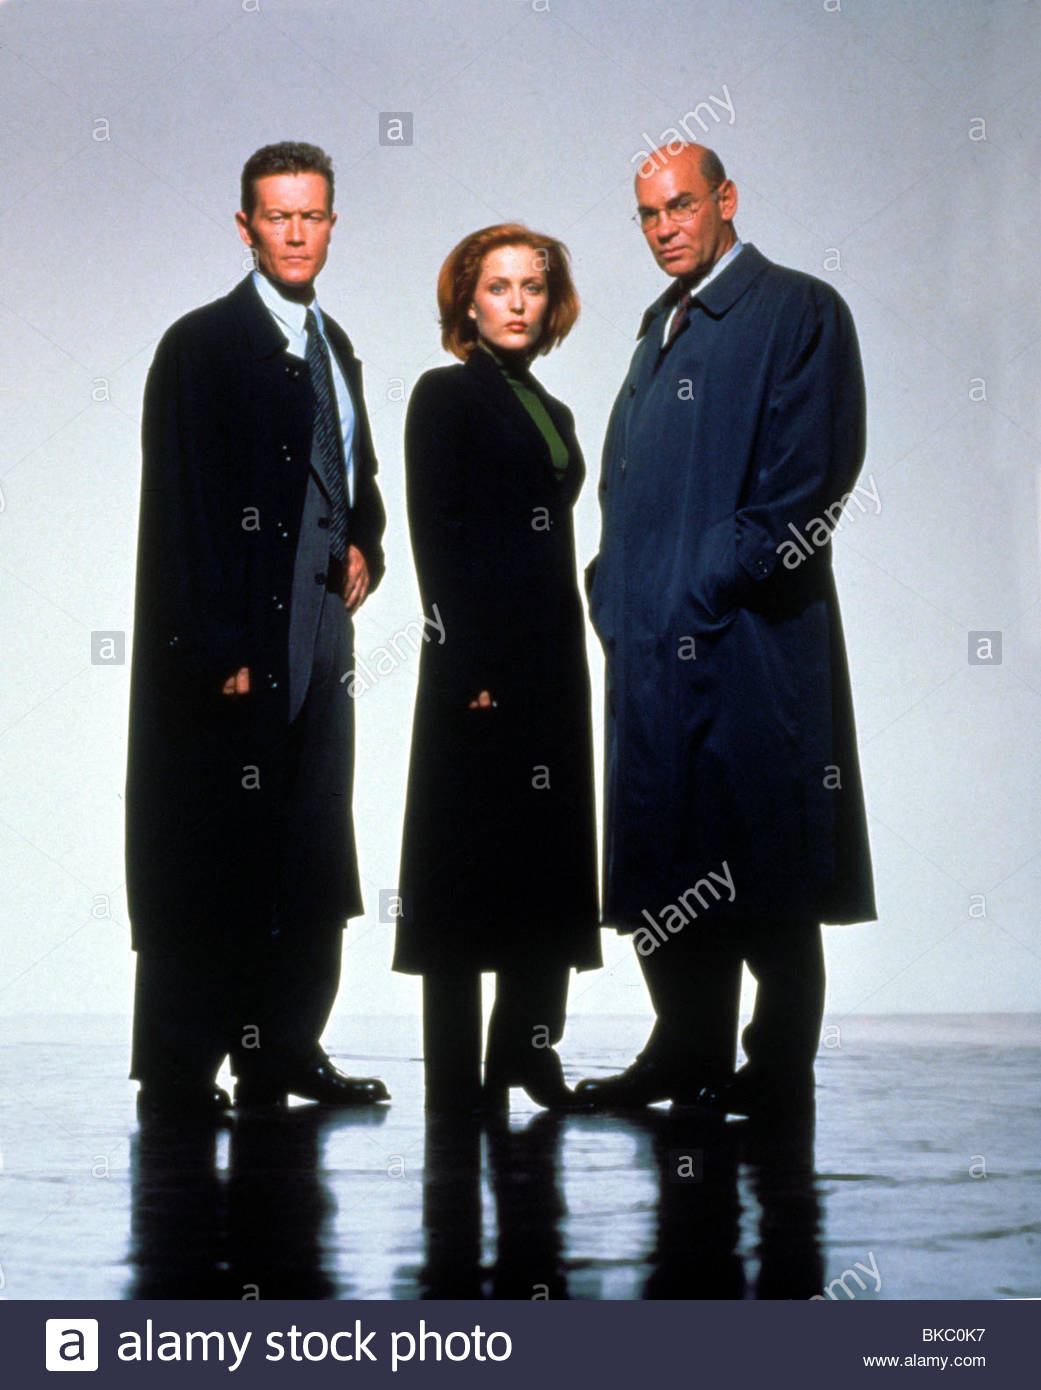 THE X-FILES (TV) ROBERT PATRICK, GILLIAN ANDERSON, MITCH PILEGGI XFIL 458 - Stock Image